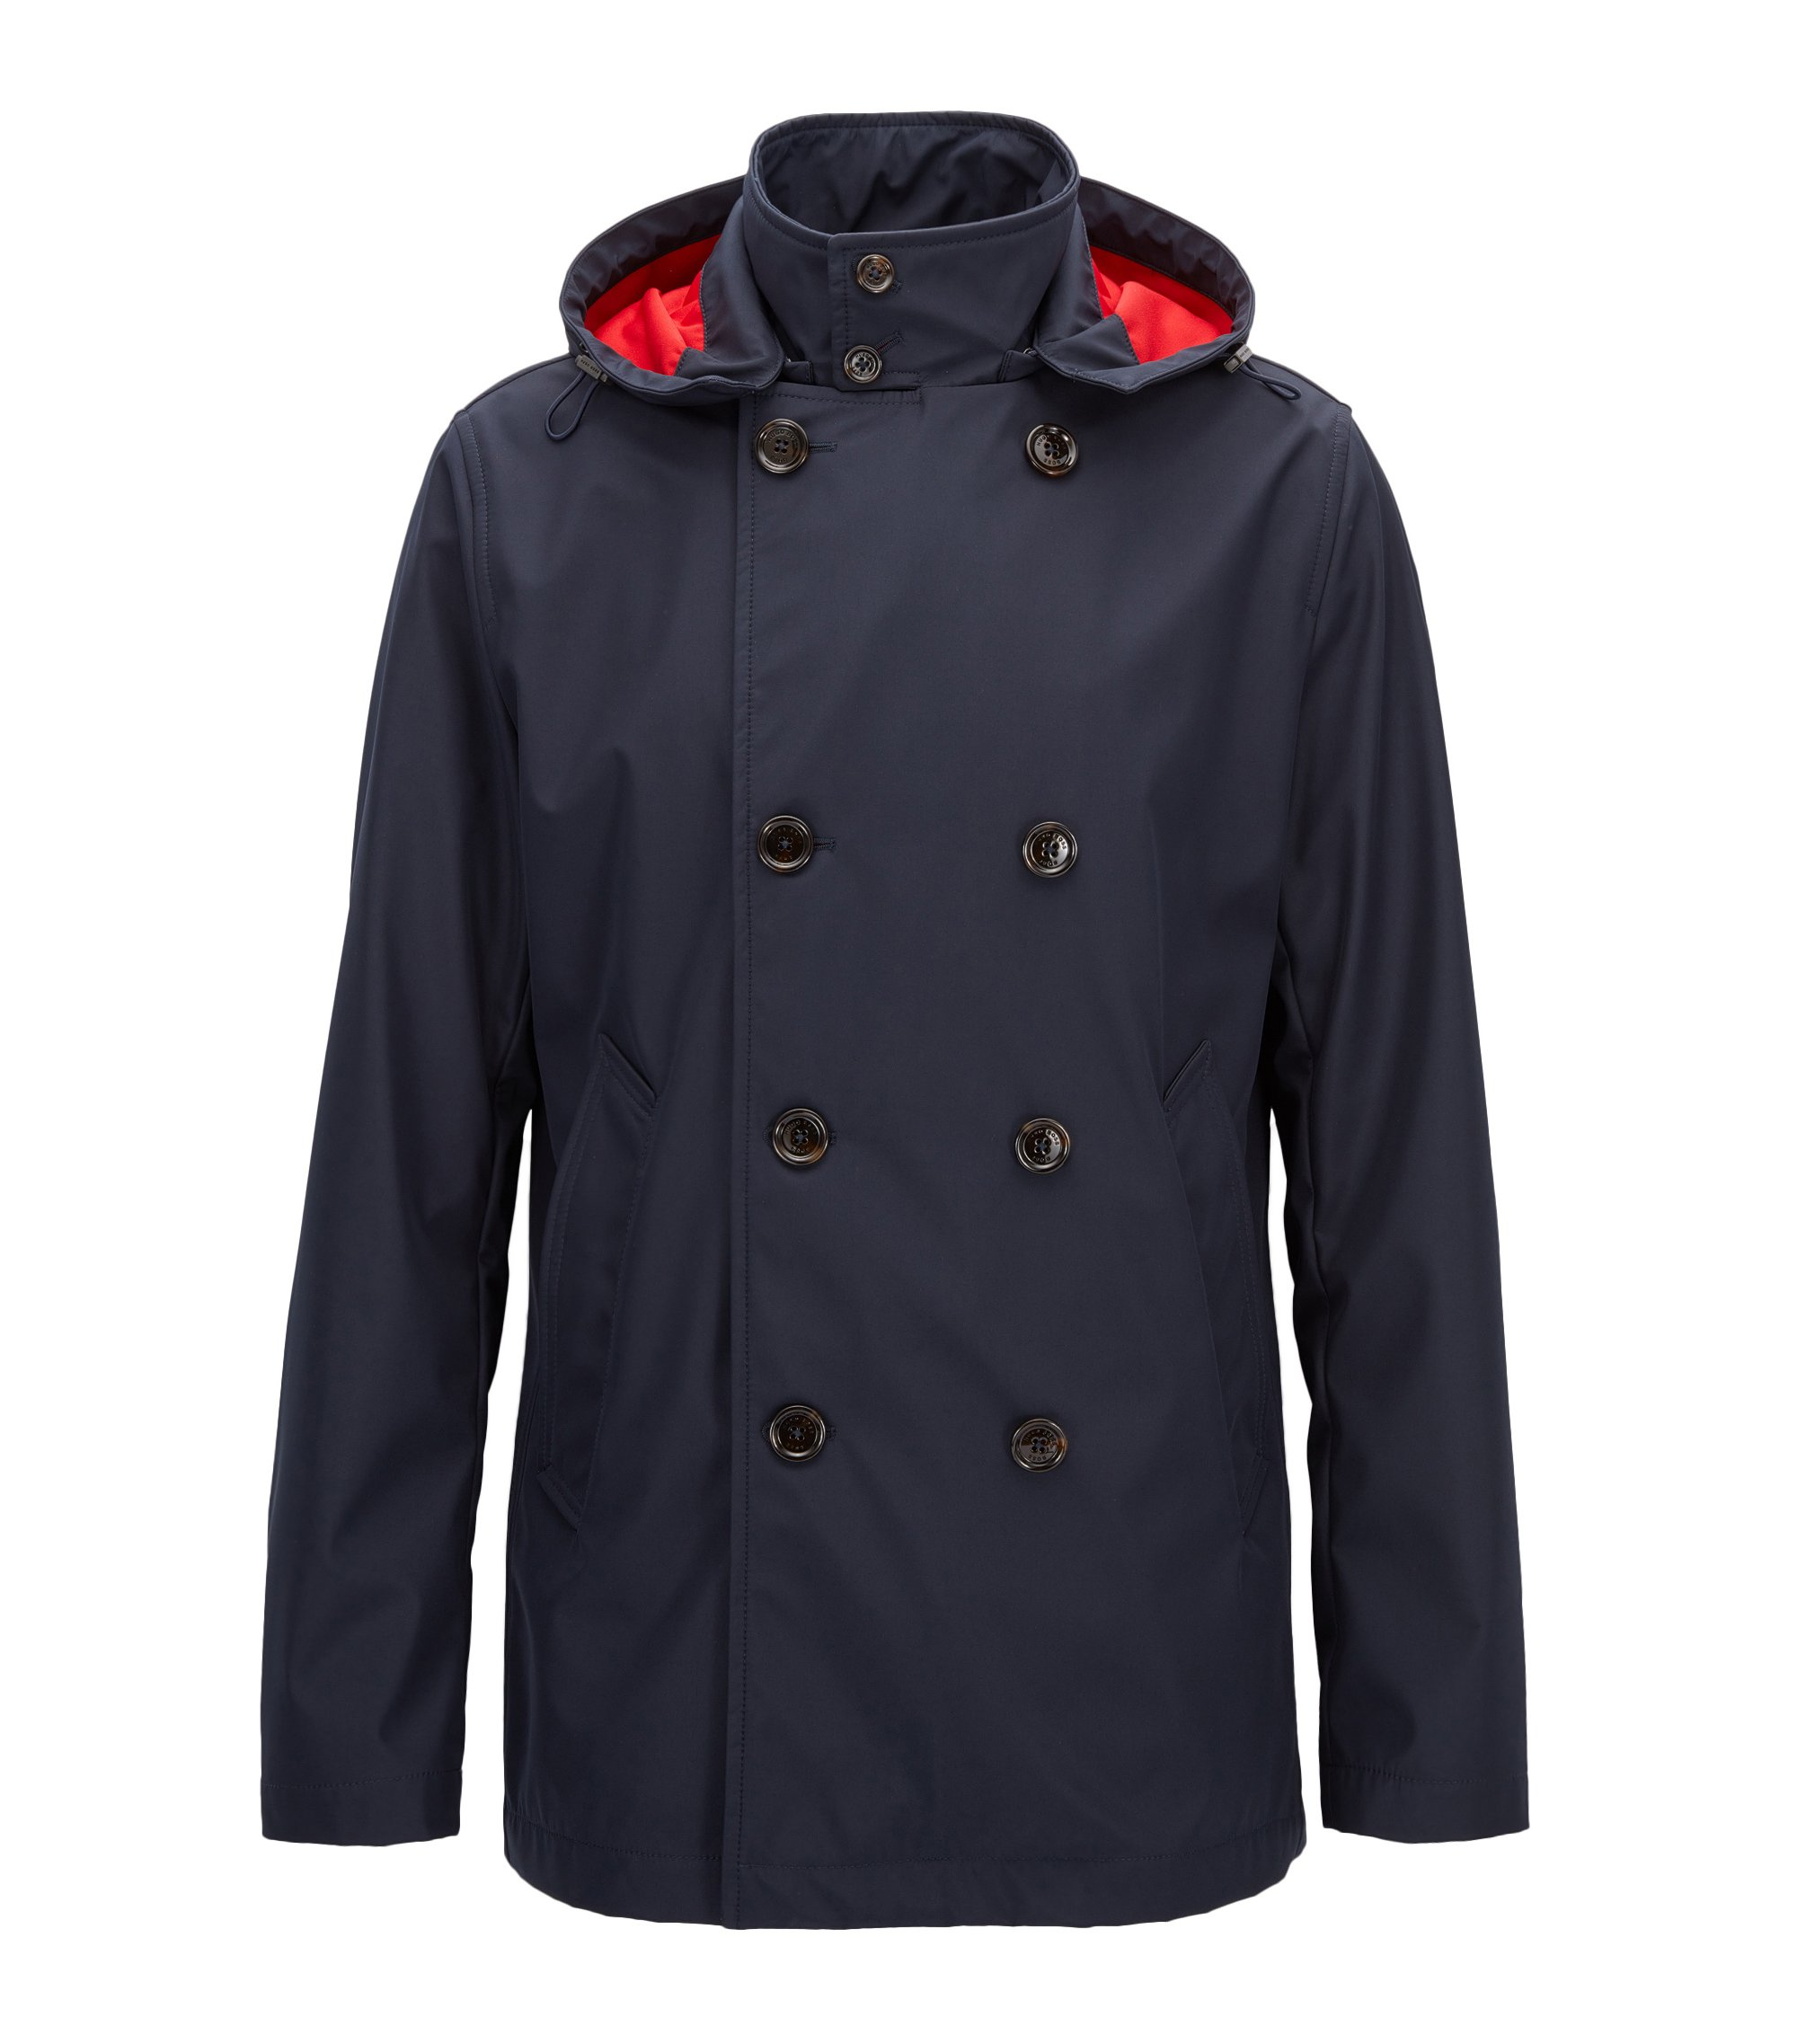 Water-Resistant Double-Breasted Jacket | Callan, Dark Blue